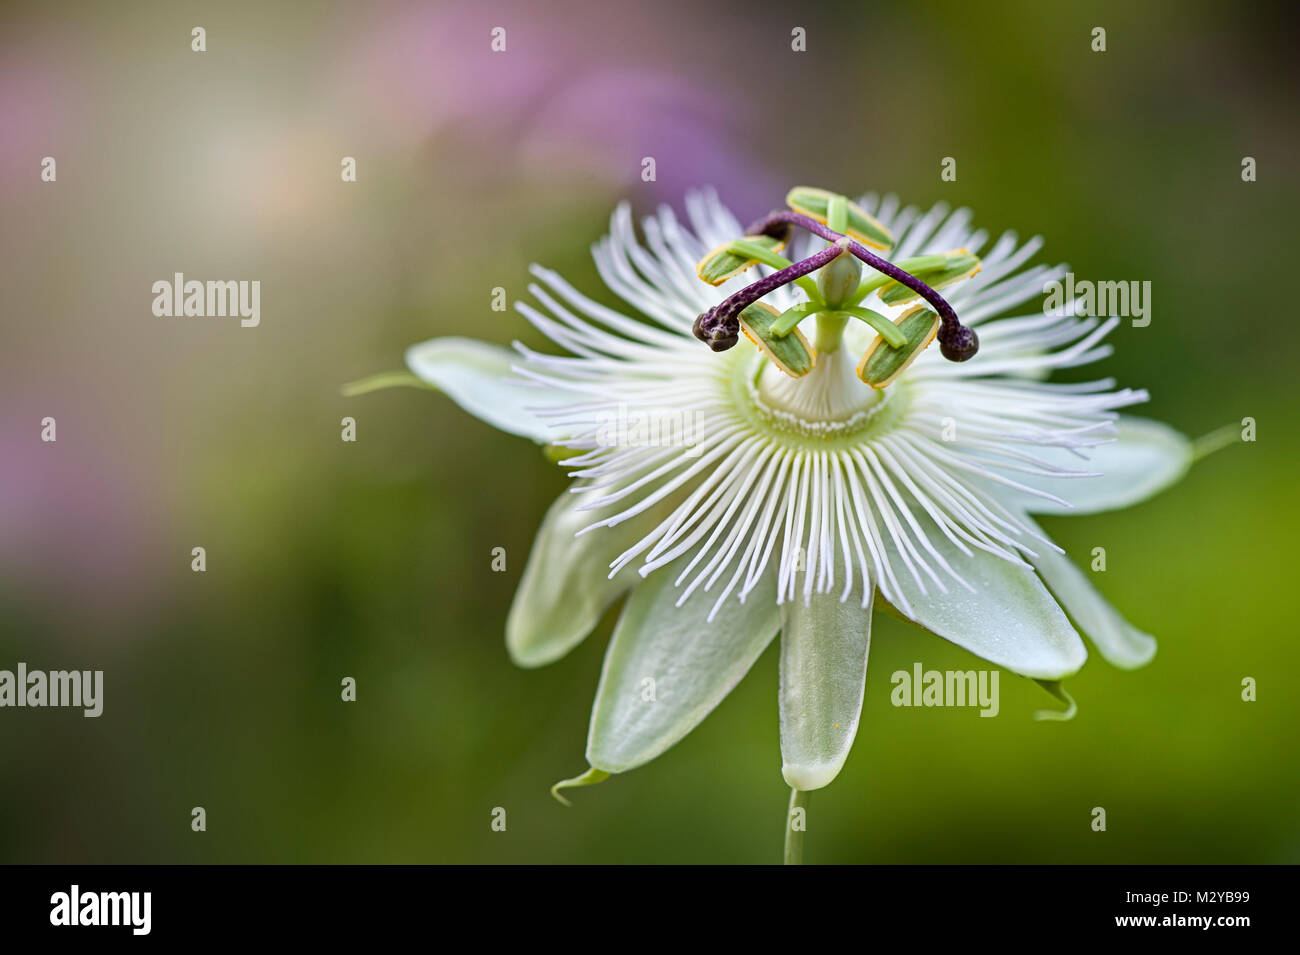 Close Up Image Of The Summer Flowering Passion Flower Constance